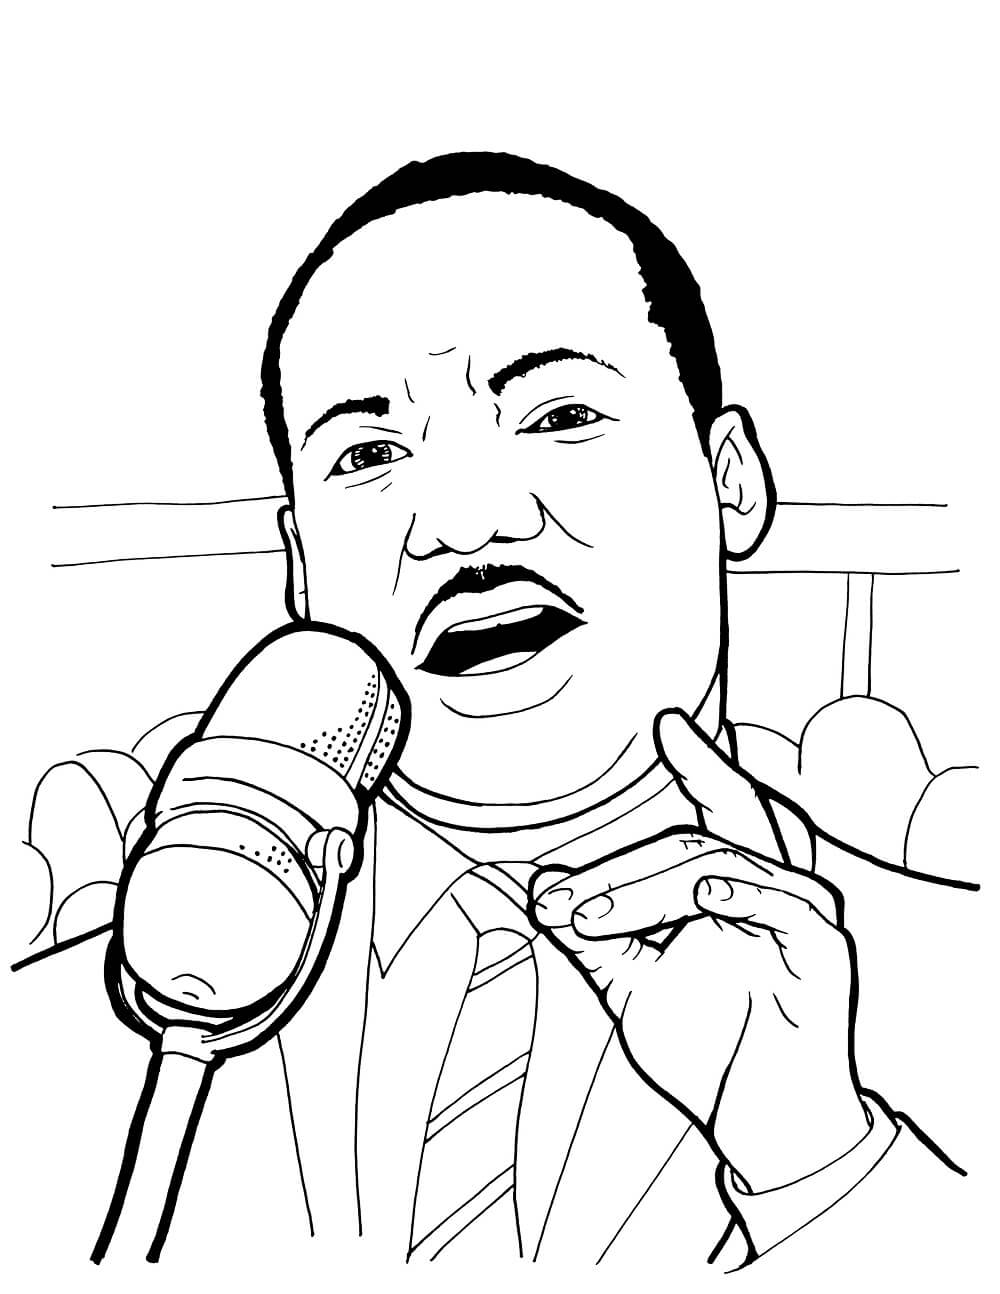 martin luther king jr coloring pages free get this picture of martin luther king jr coloring pages coloring king martin pages jr luther free